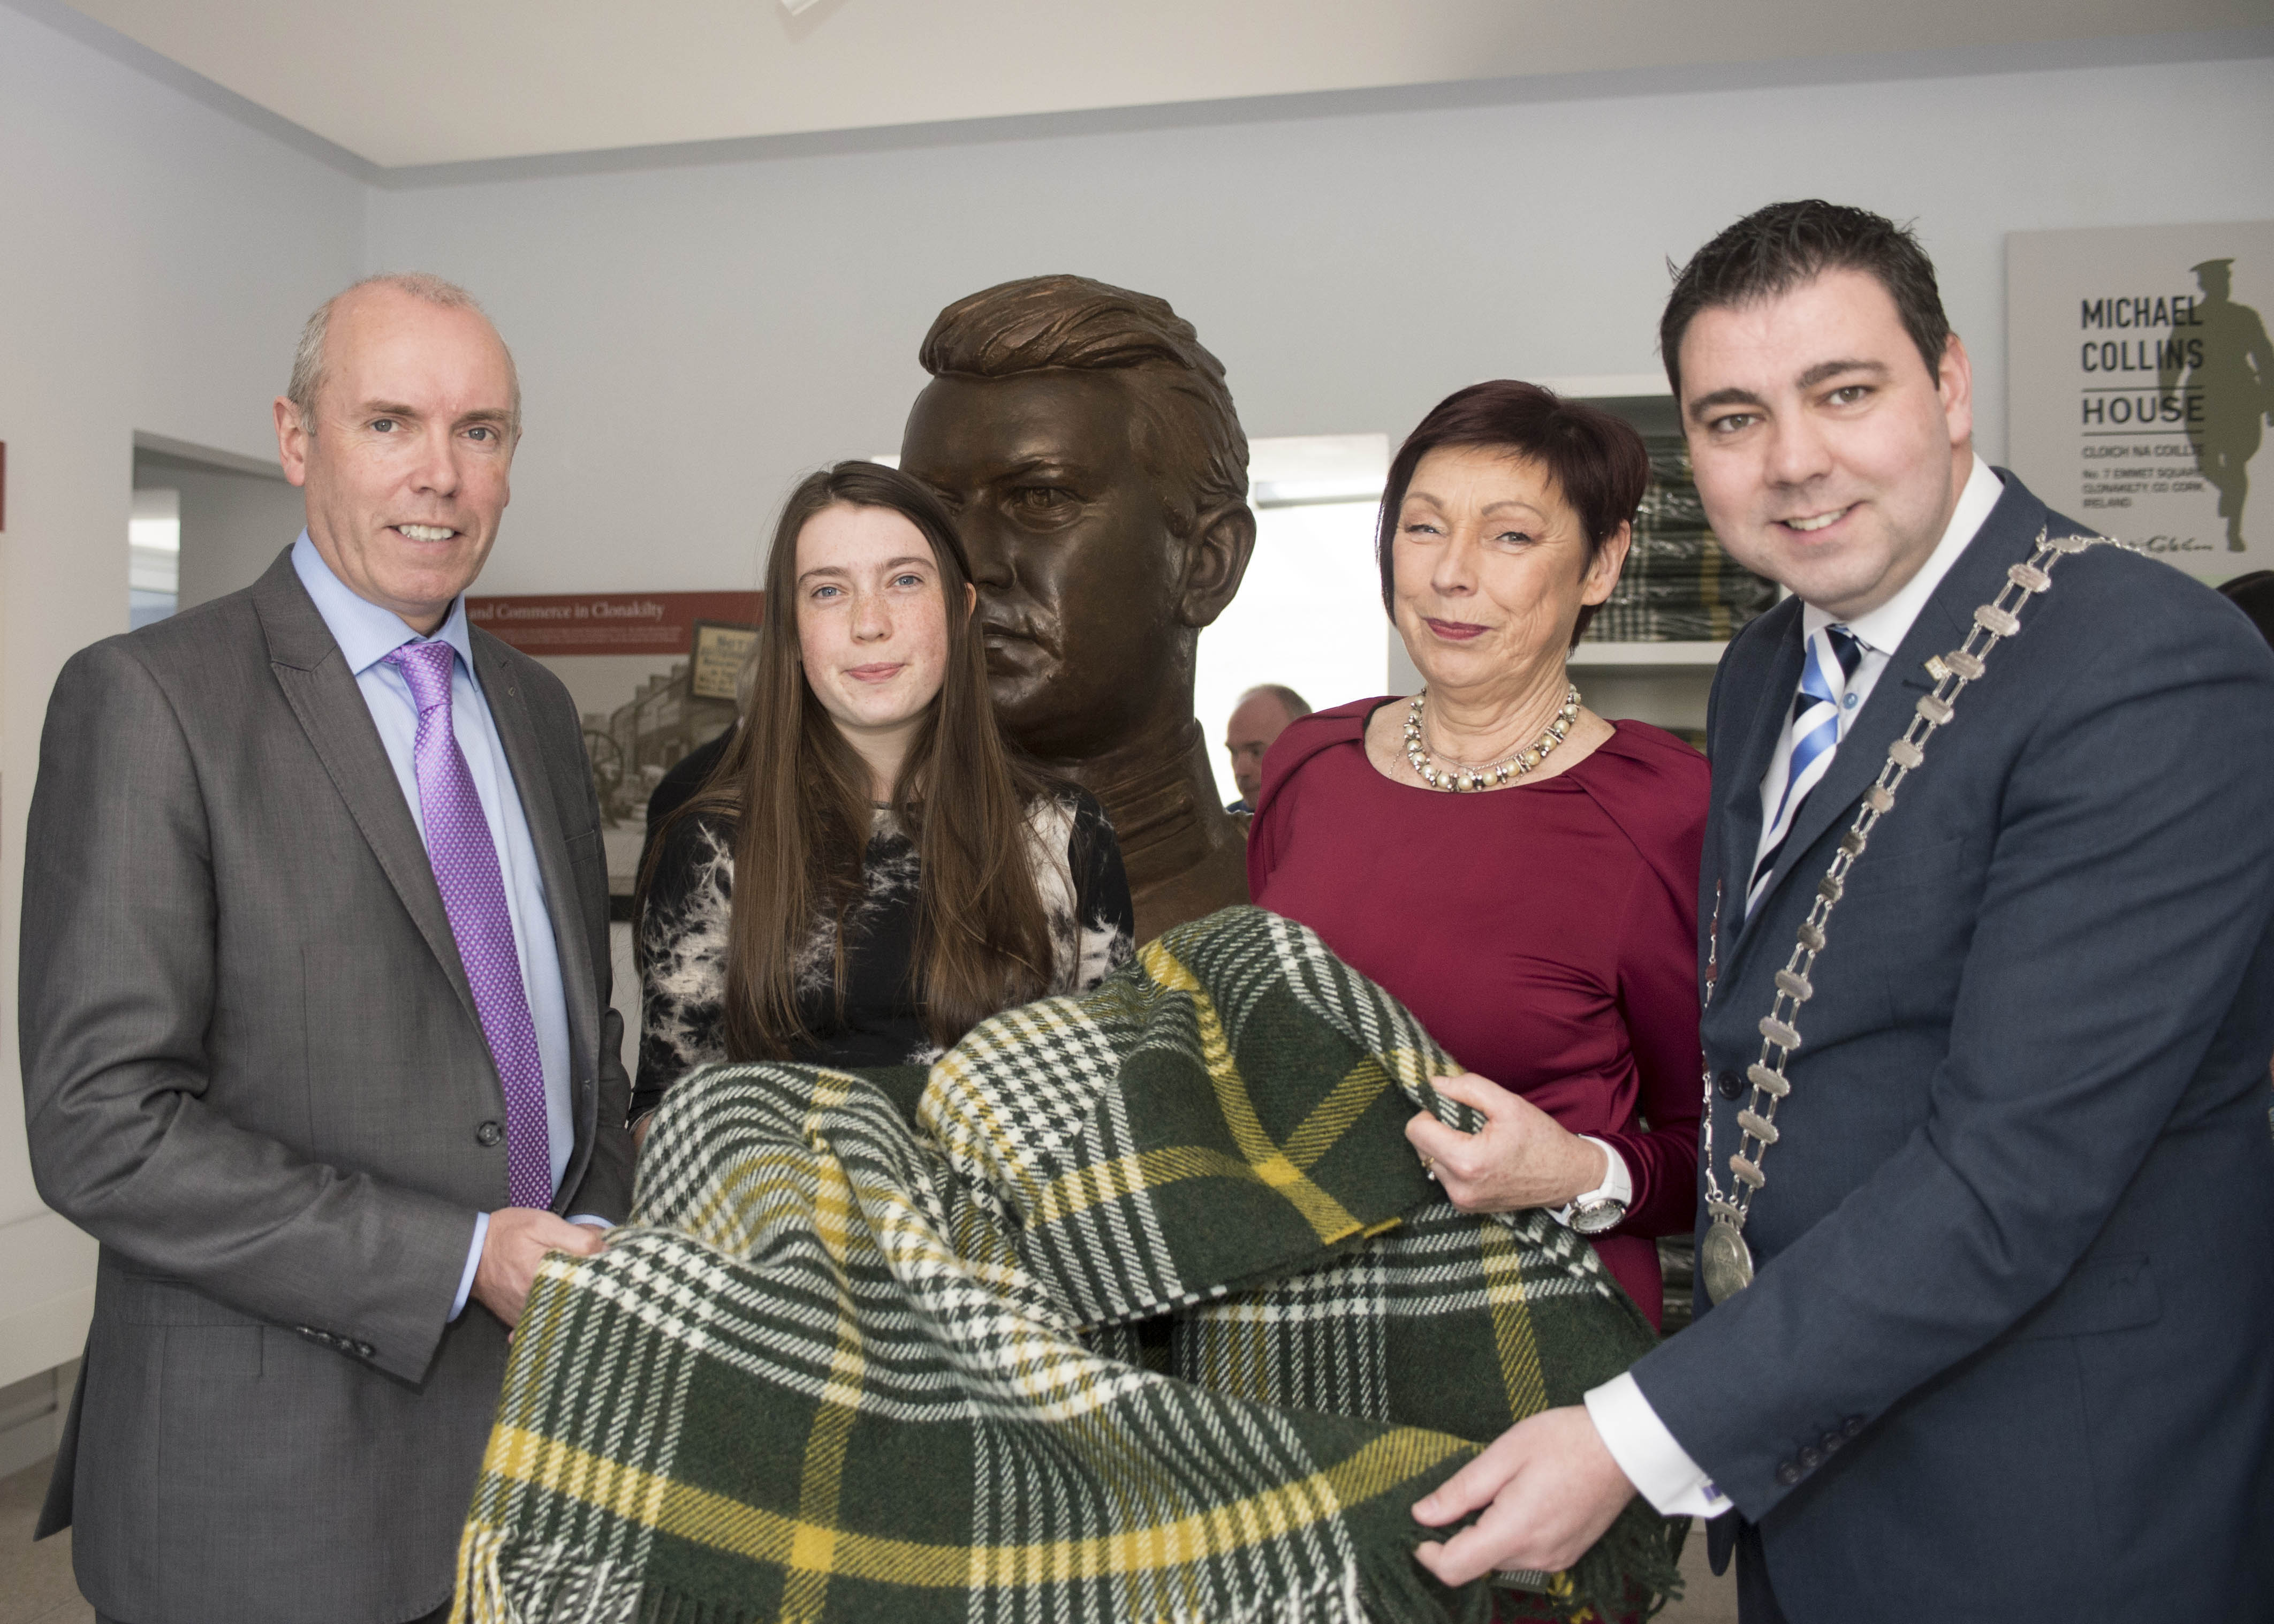 'Michael Collins House' Museum opens in Clonakilty, West Cork